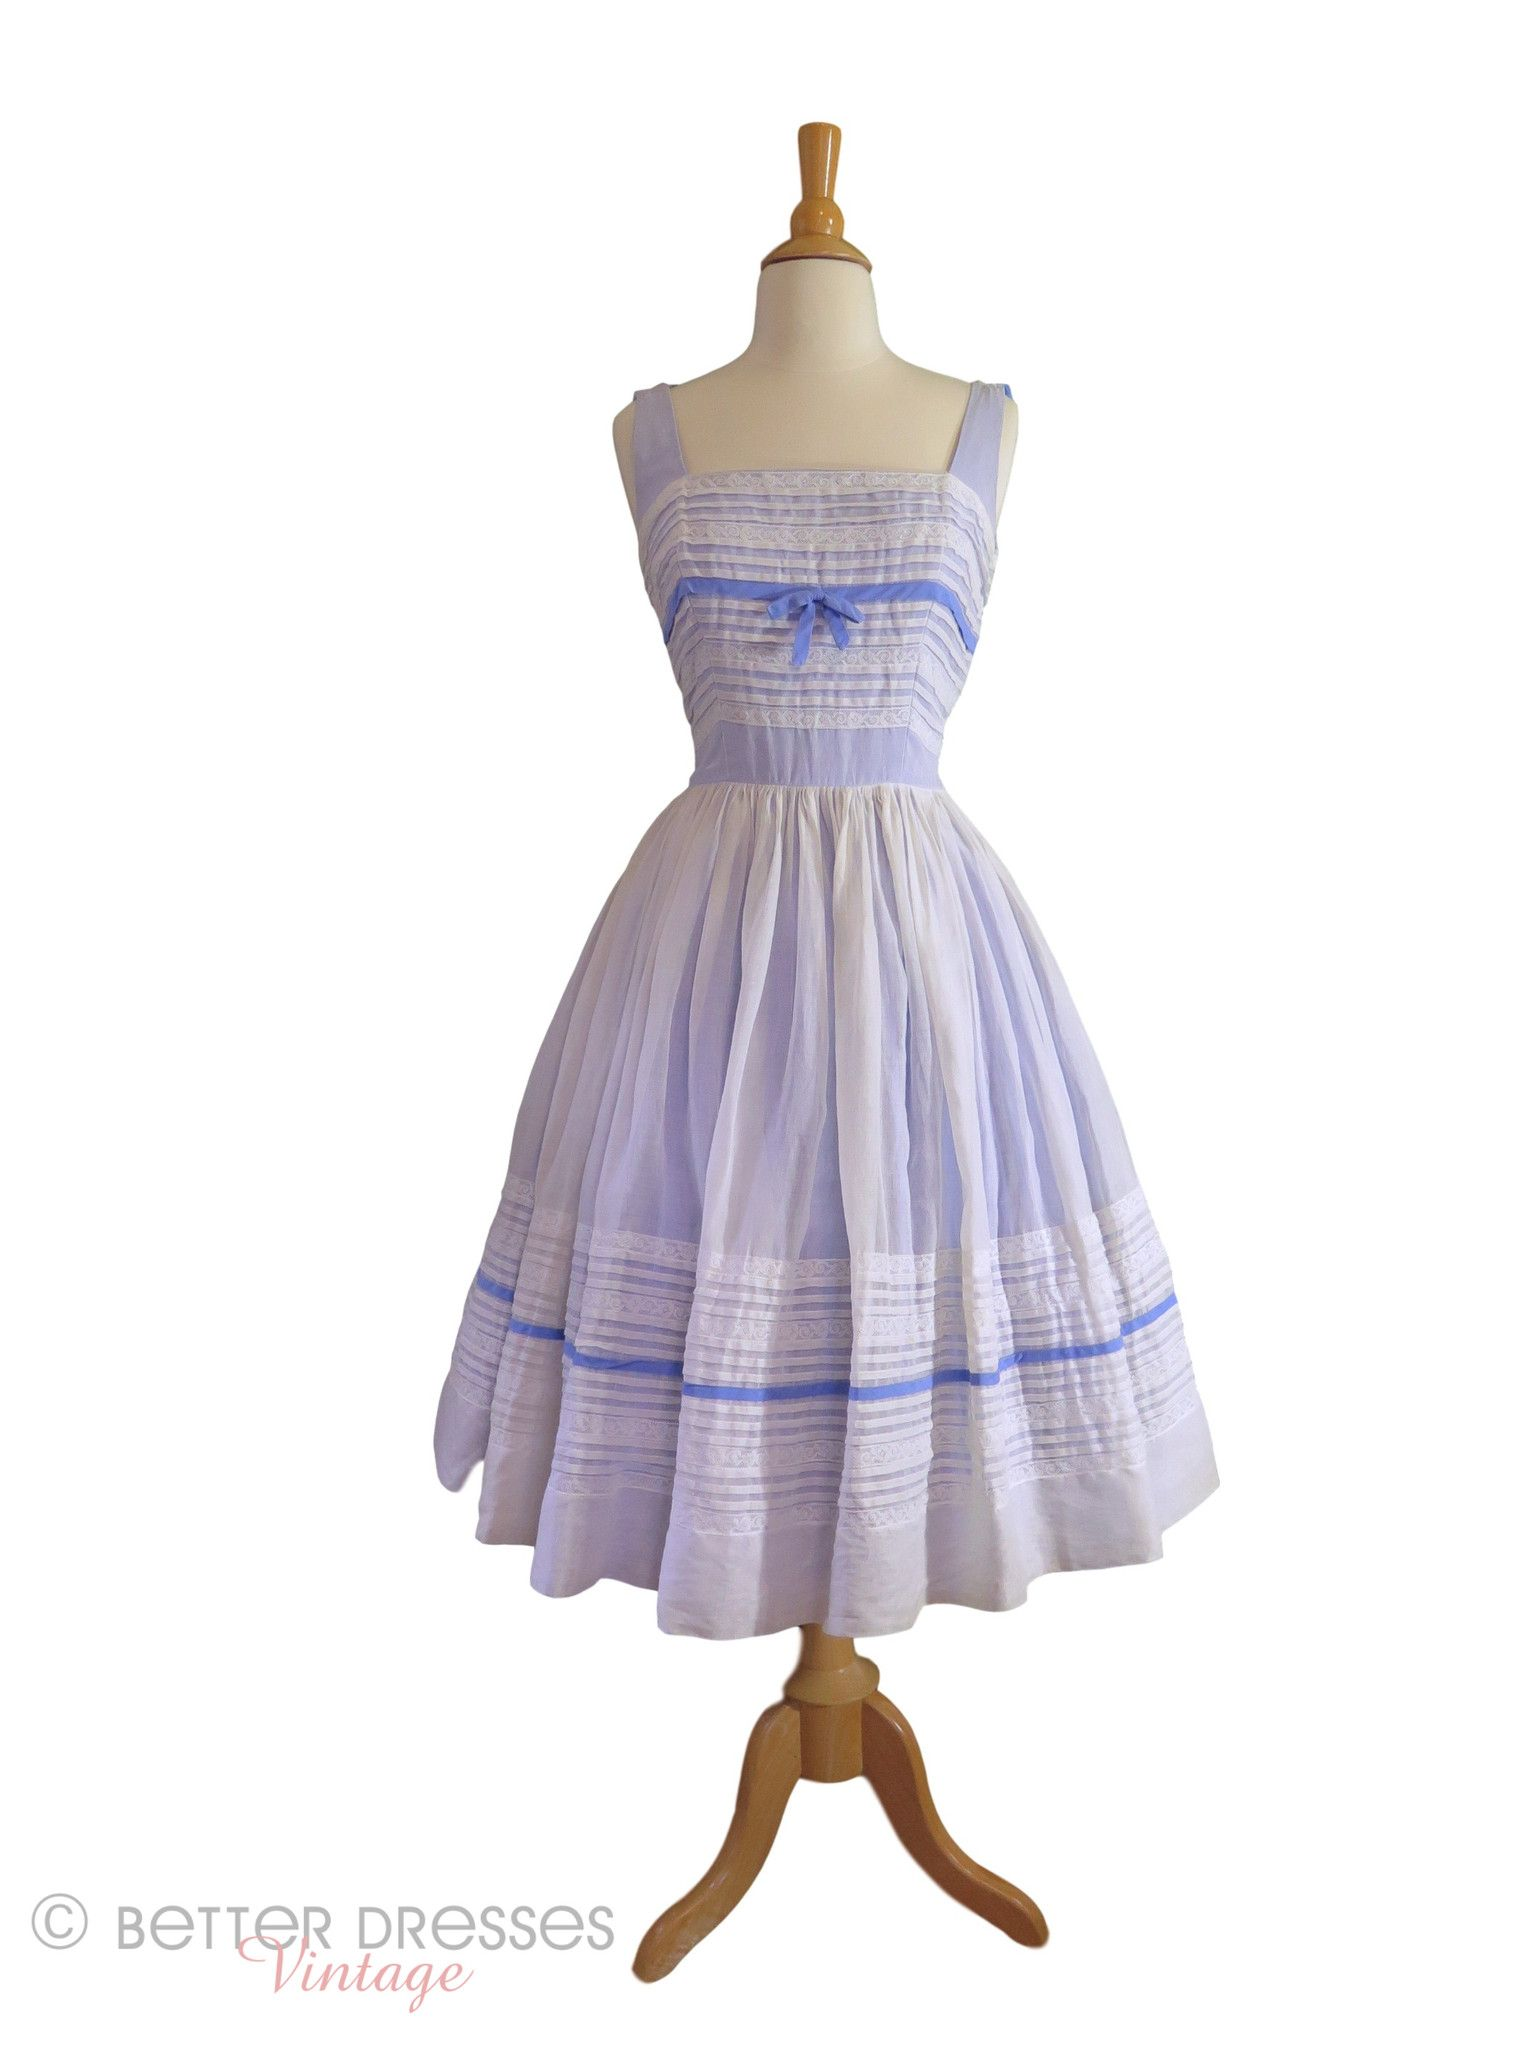 S white organdy over blue party dress sm med blue party dress